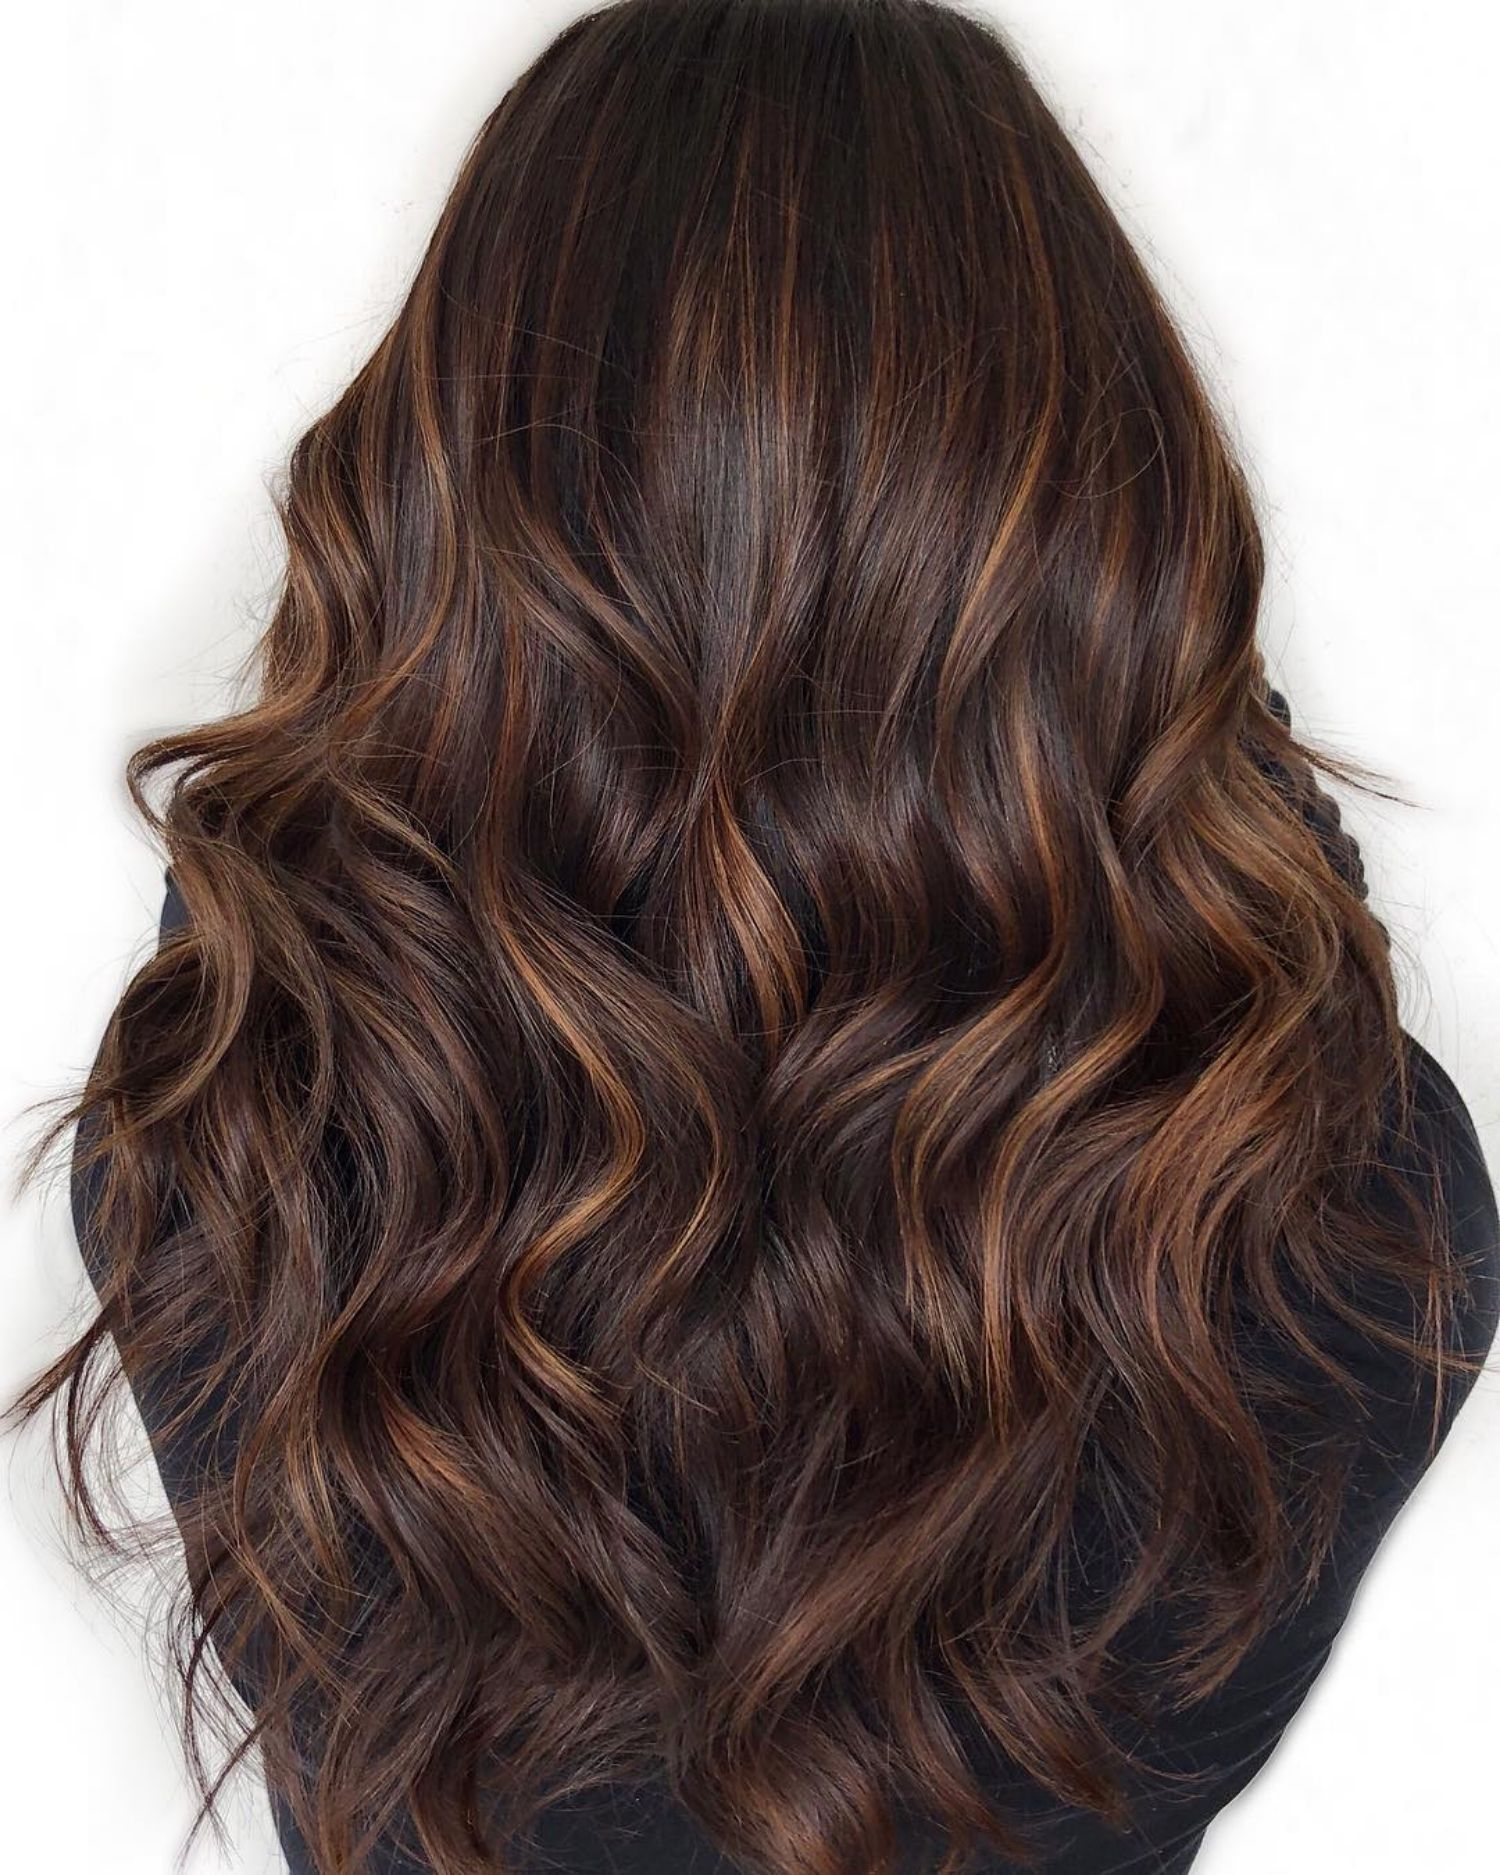 Subtle Balayage For Long Brown Hair Brown Hair With Blonde Highlights Brown Blonde Hair Brown Hair With Highlights